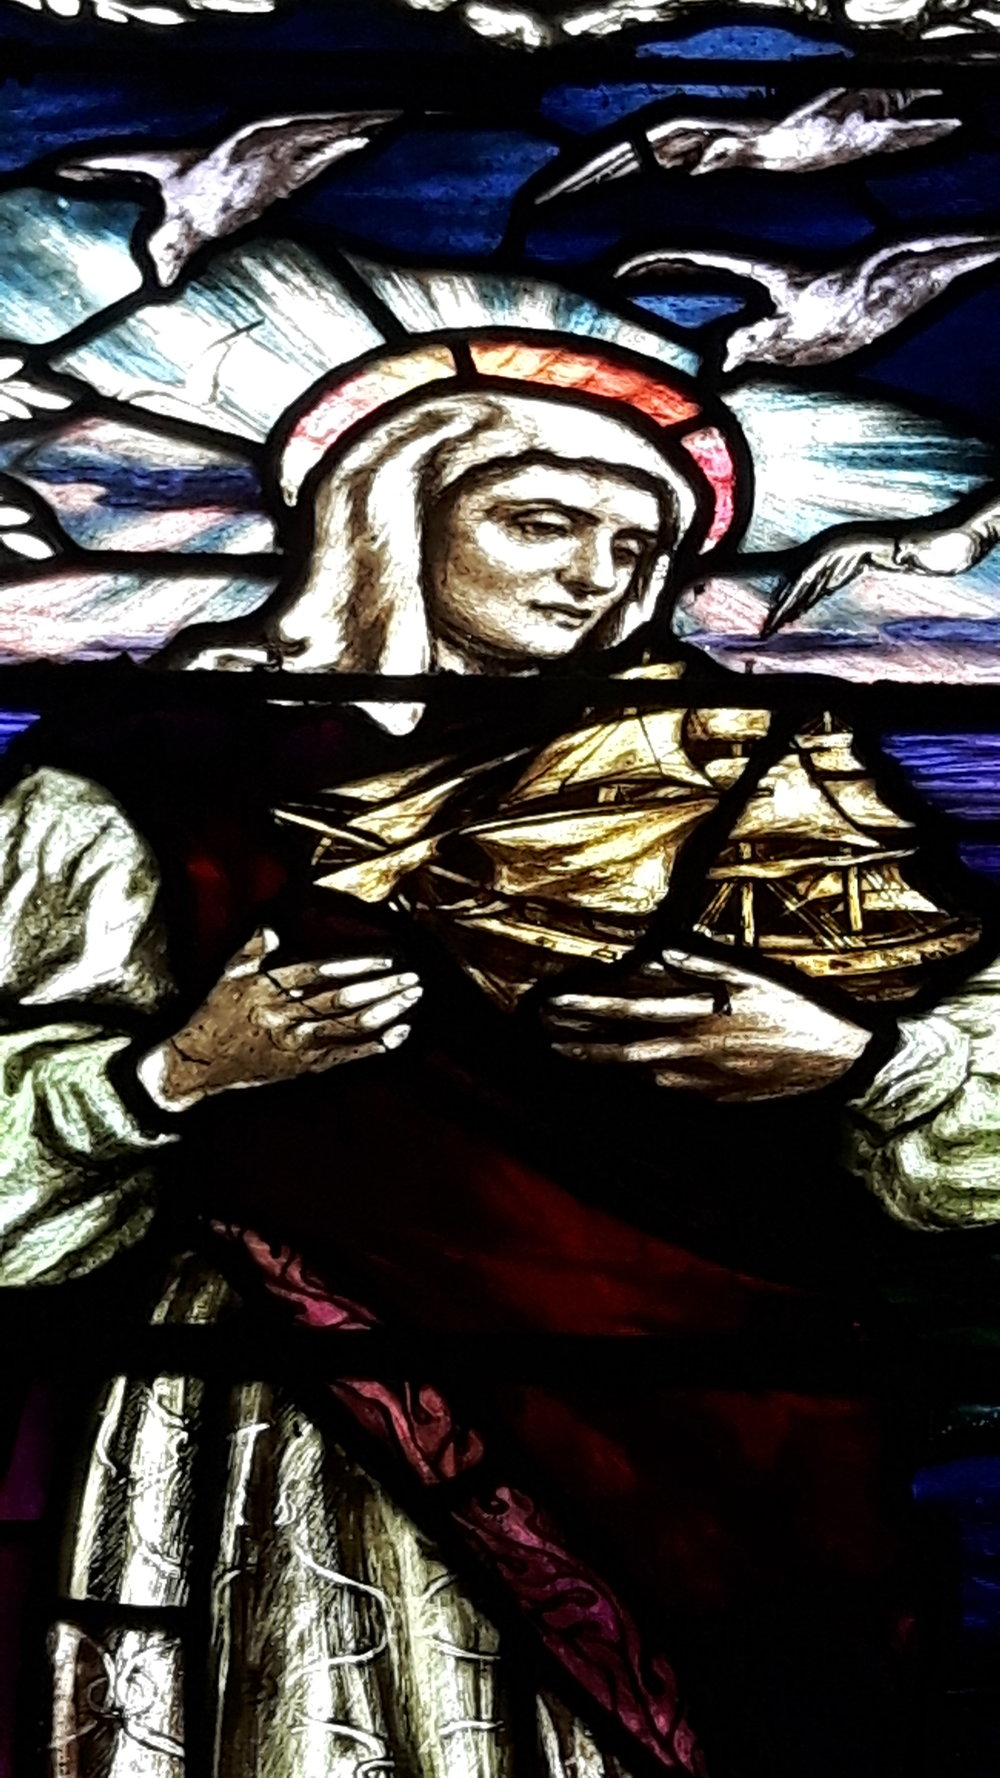 Detail of stained glass panel by Mary Lowndes, St Ann's Chapel, Saunton